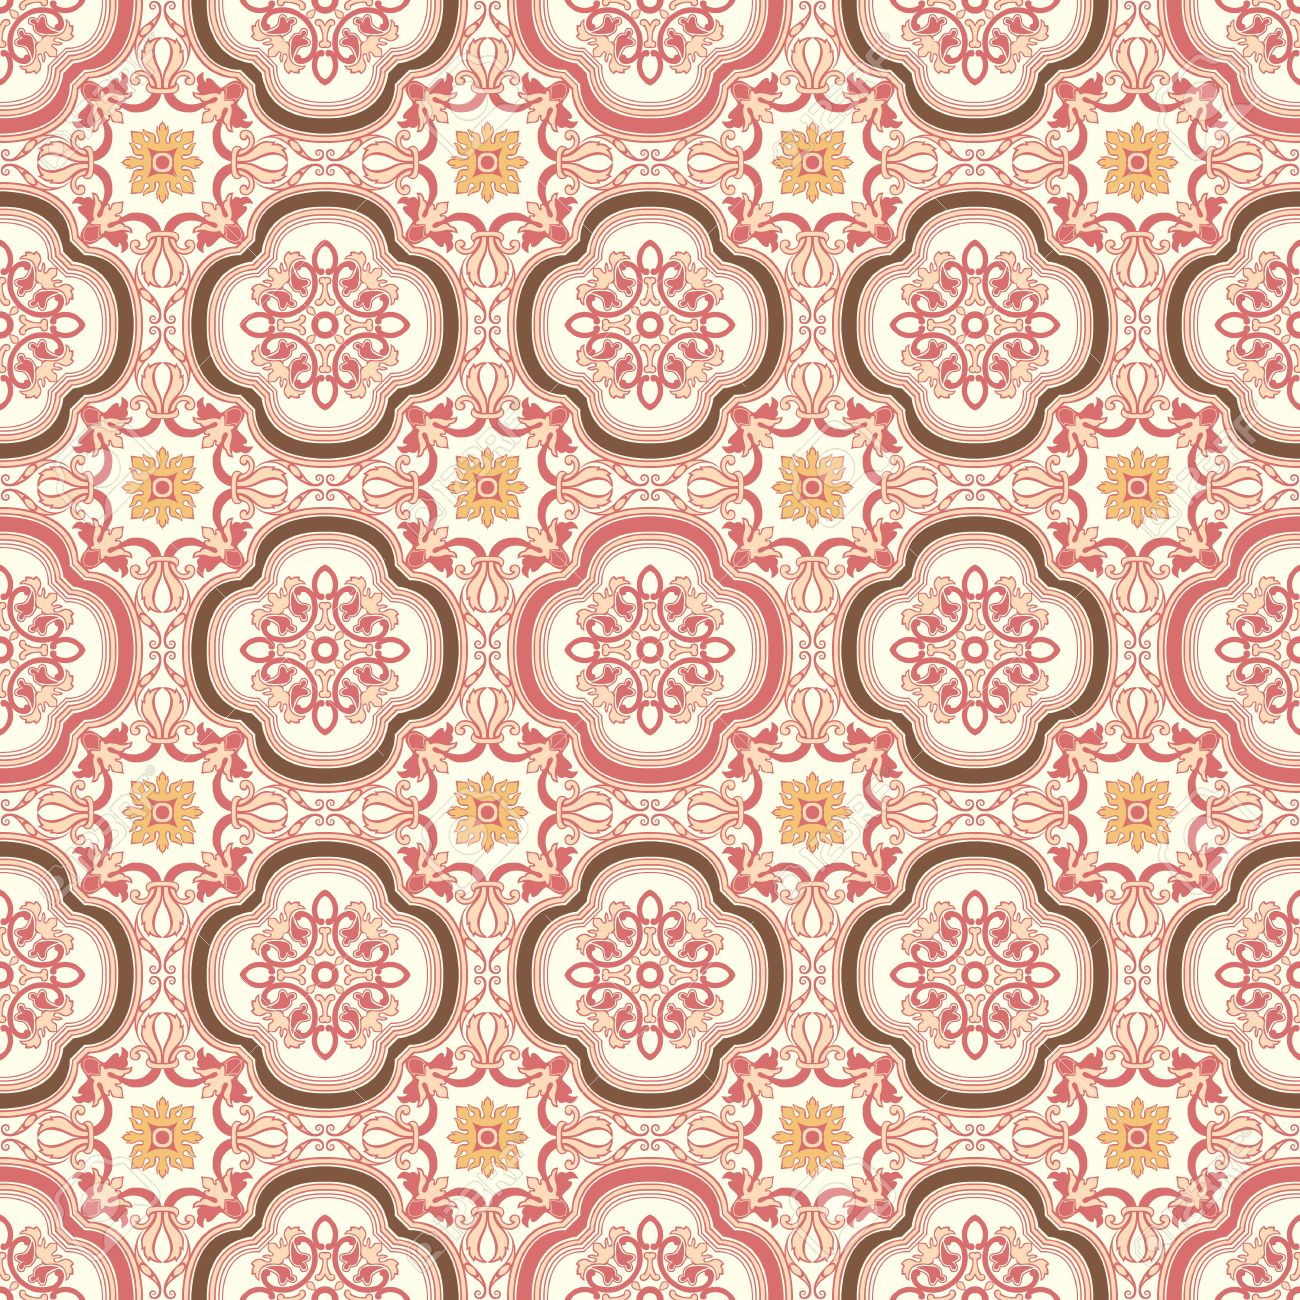 background vintage flower seamless floral pattern abstract